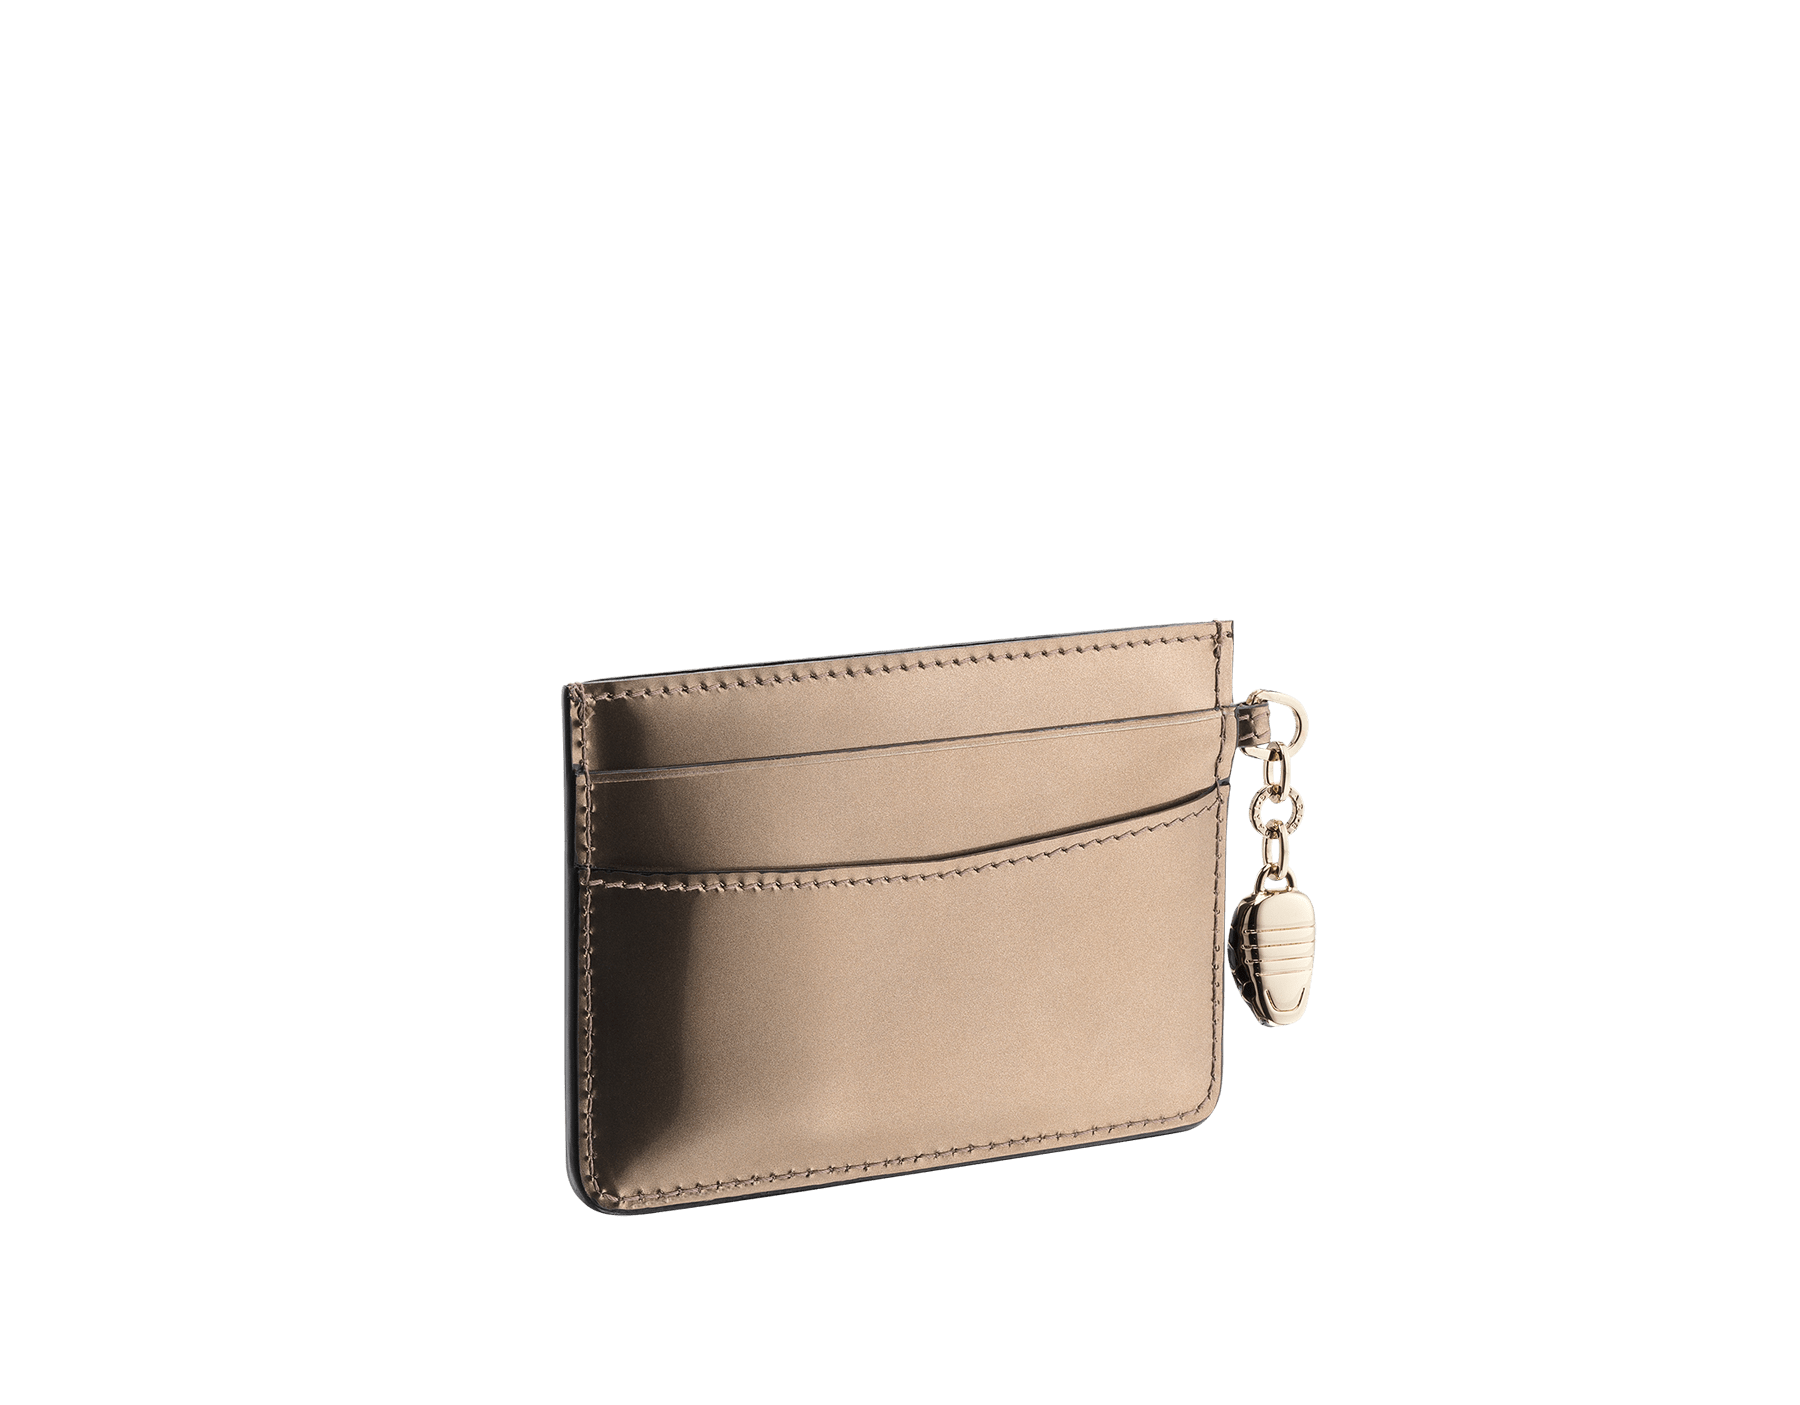 Credit card holder in forest emerald brushed metallic calf leather and black calf leather lining. Serpenti charm in black and white enamel with green malachite enamel eyes and Bulgari logo. SEA-CC-HOLDER-BMCL image 2